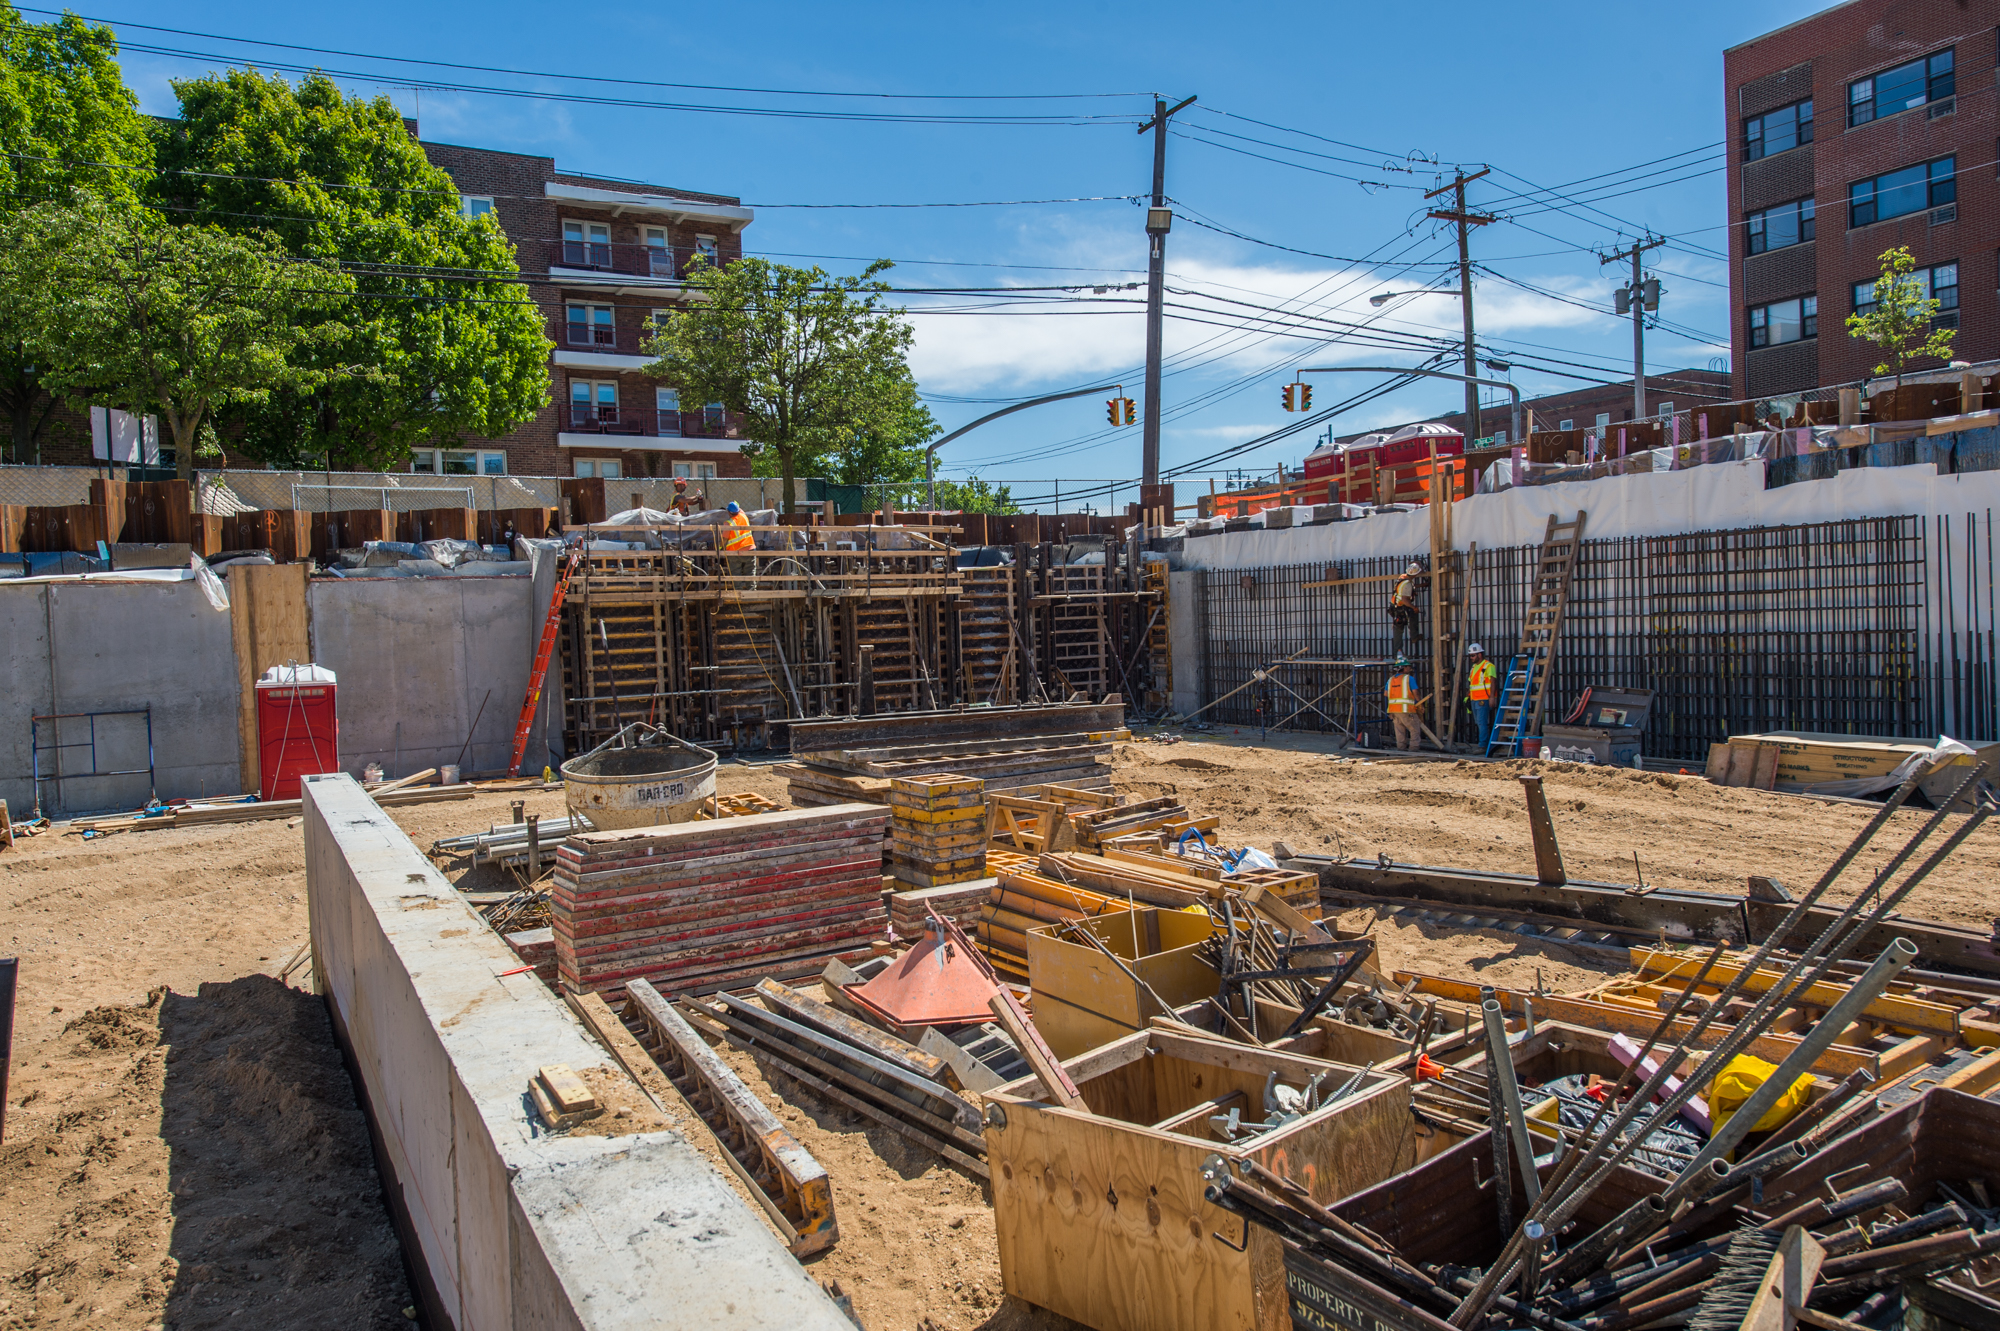 Mineola Harrison Ave Parking Structure 5-24-19